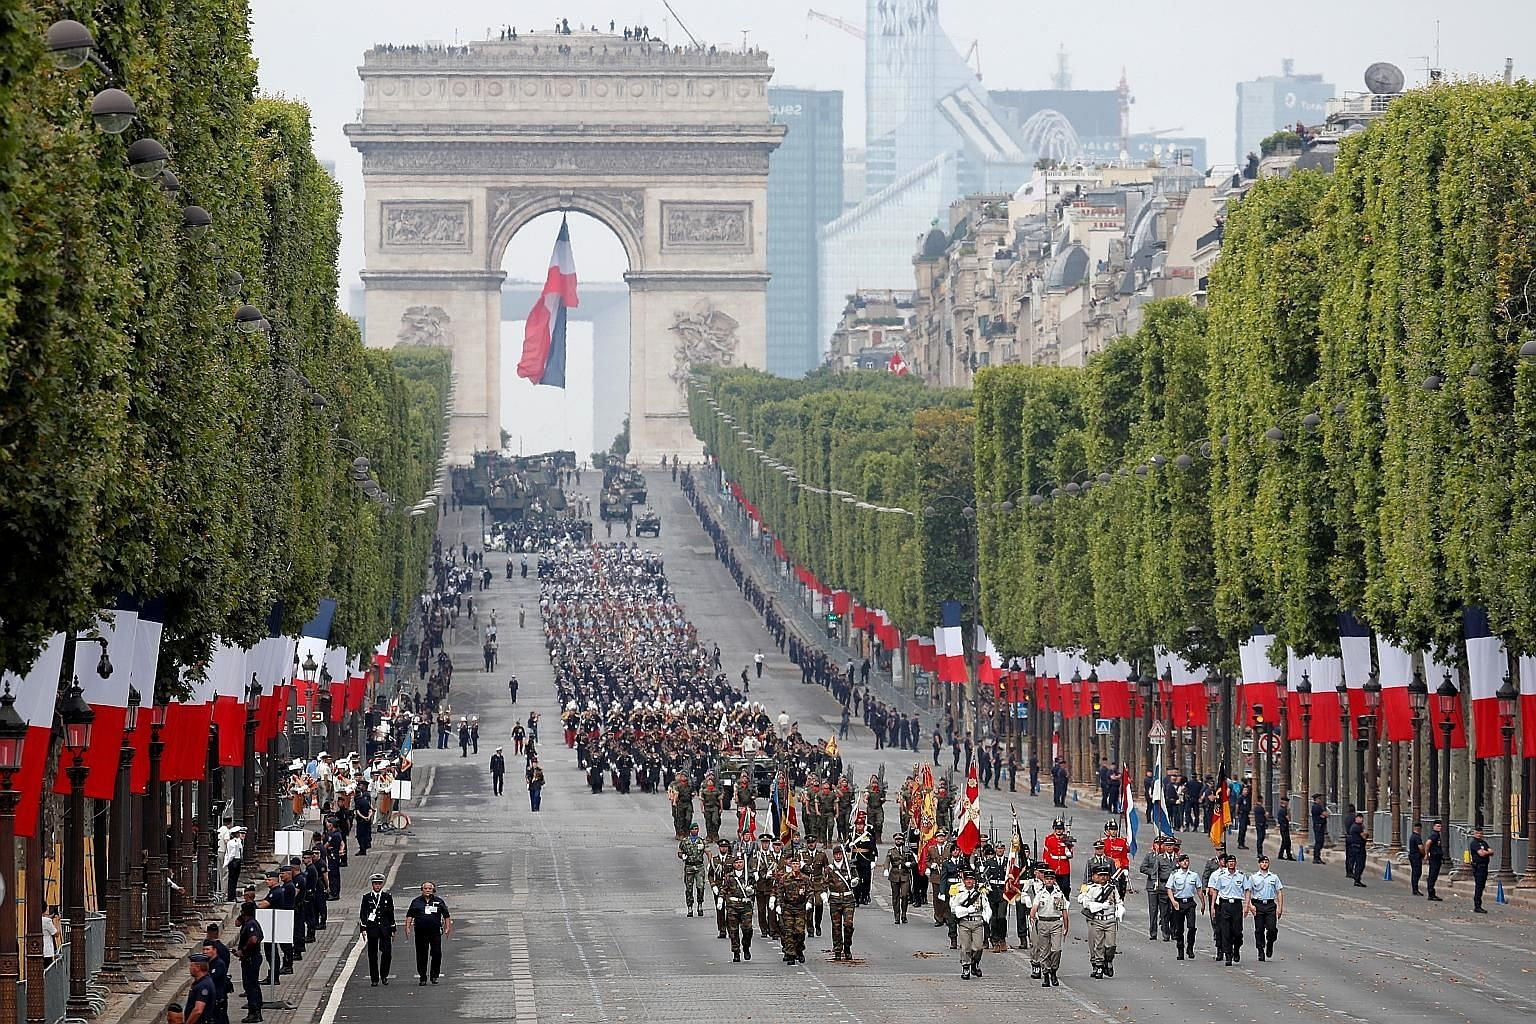 European troops marching down Champs-Elysees Avenue during the traditional Bastille Day military parade in Paris yesterday.